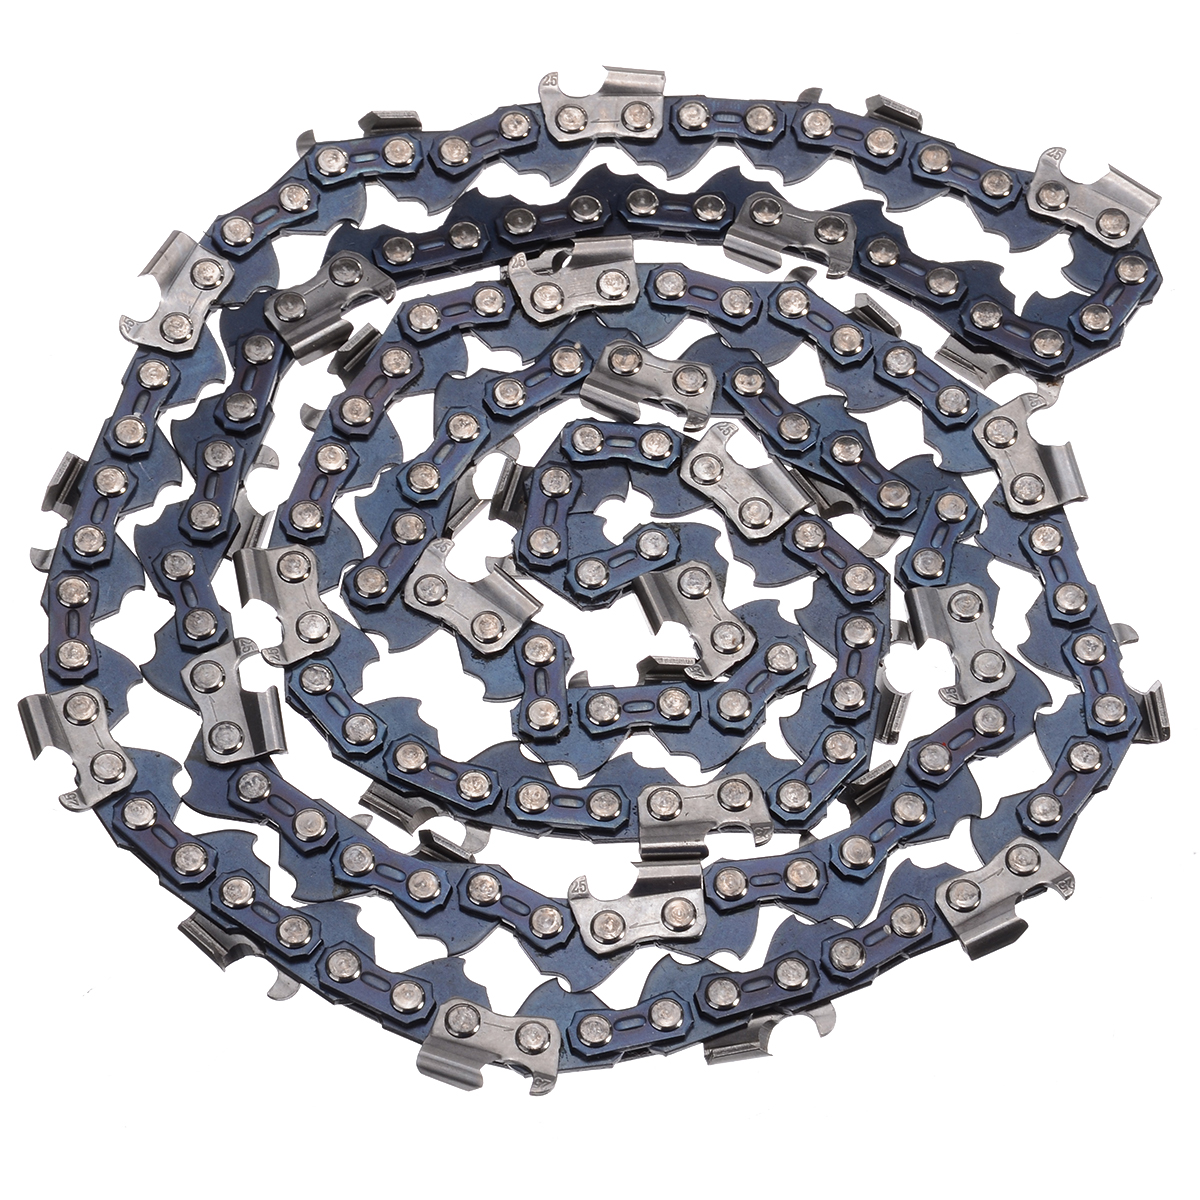 2pcs-electric-saw-chainsaws-chain-76-drive-links-replacement-mill-ripping-chain-for-portable-chain-saw-mill-cutting-garden-tools